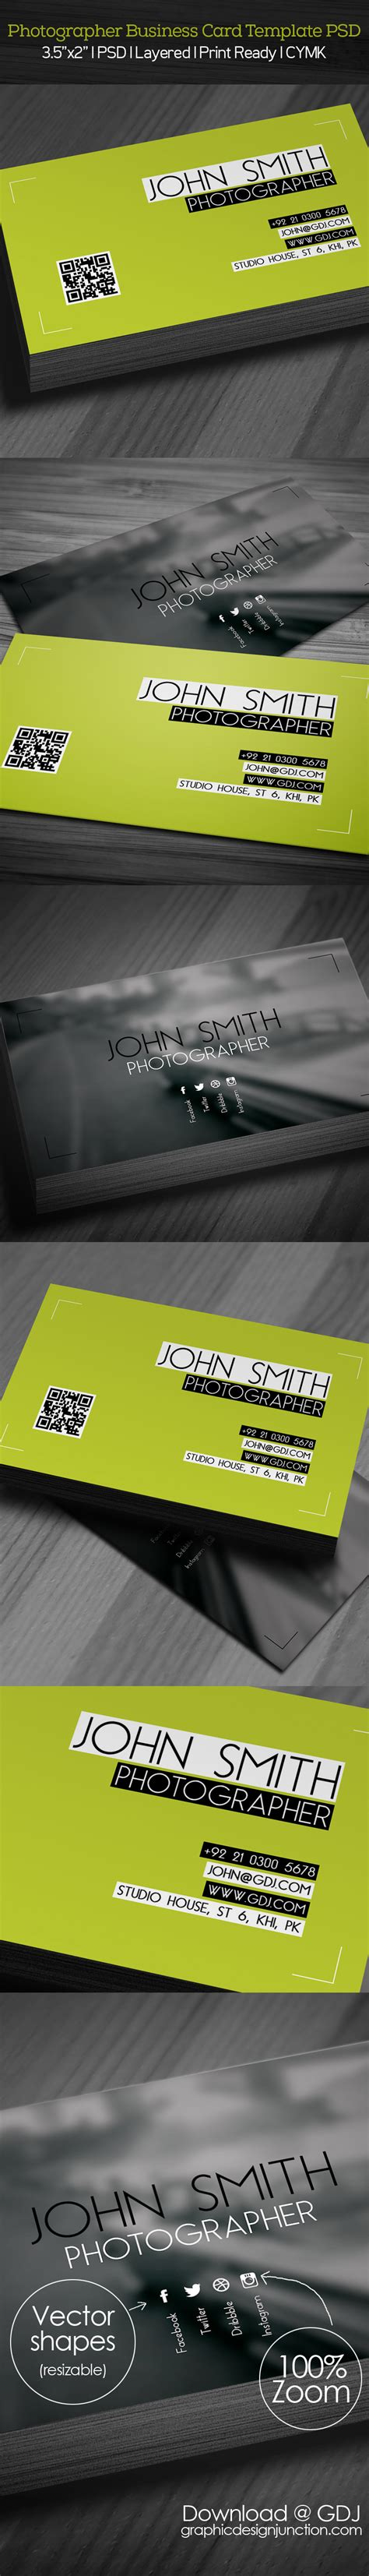 Photography Business Card Template Psd File by Free Photographer Business Card Psd Template Freebies